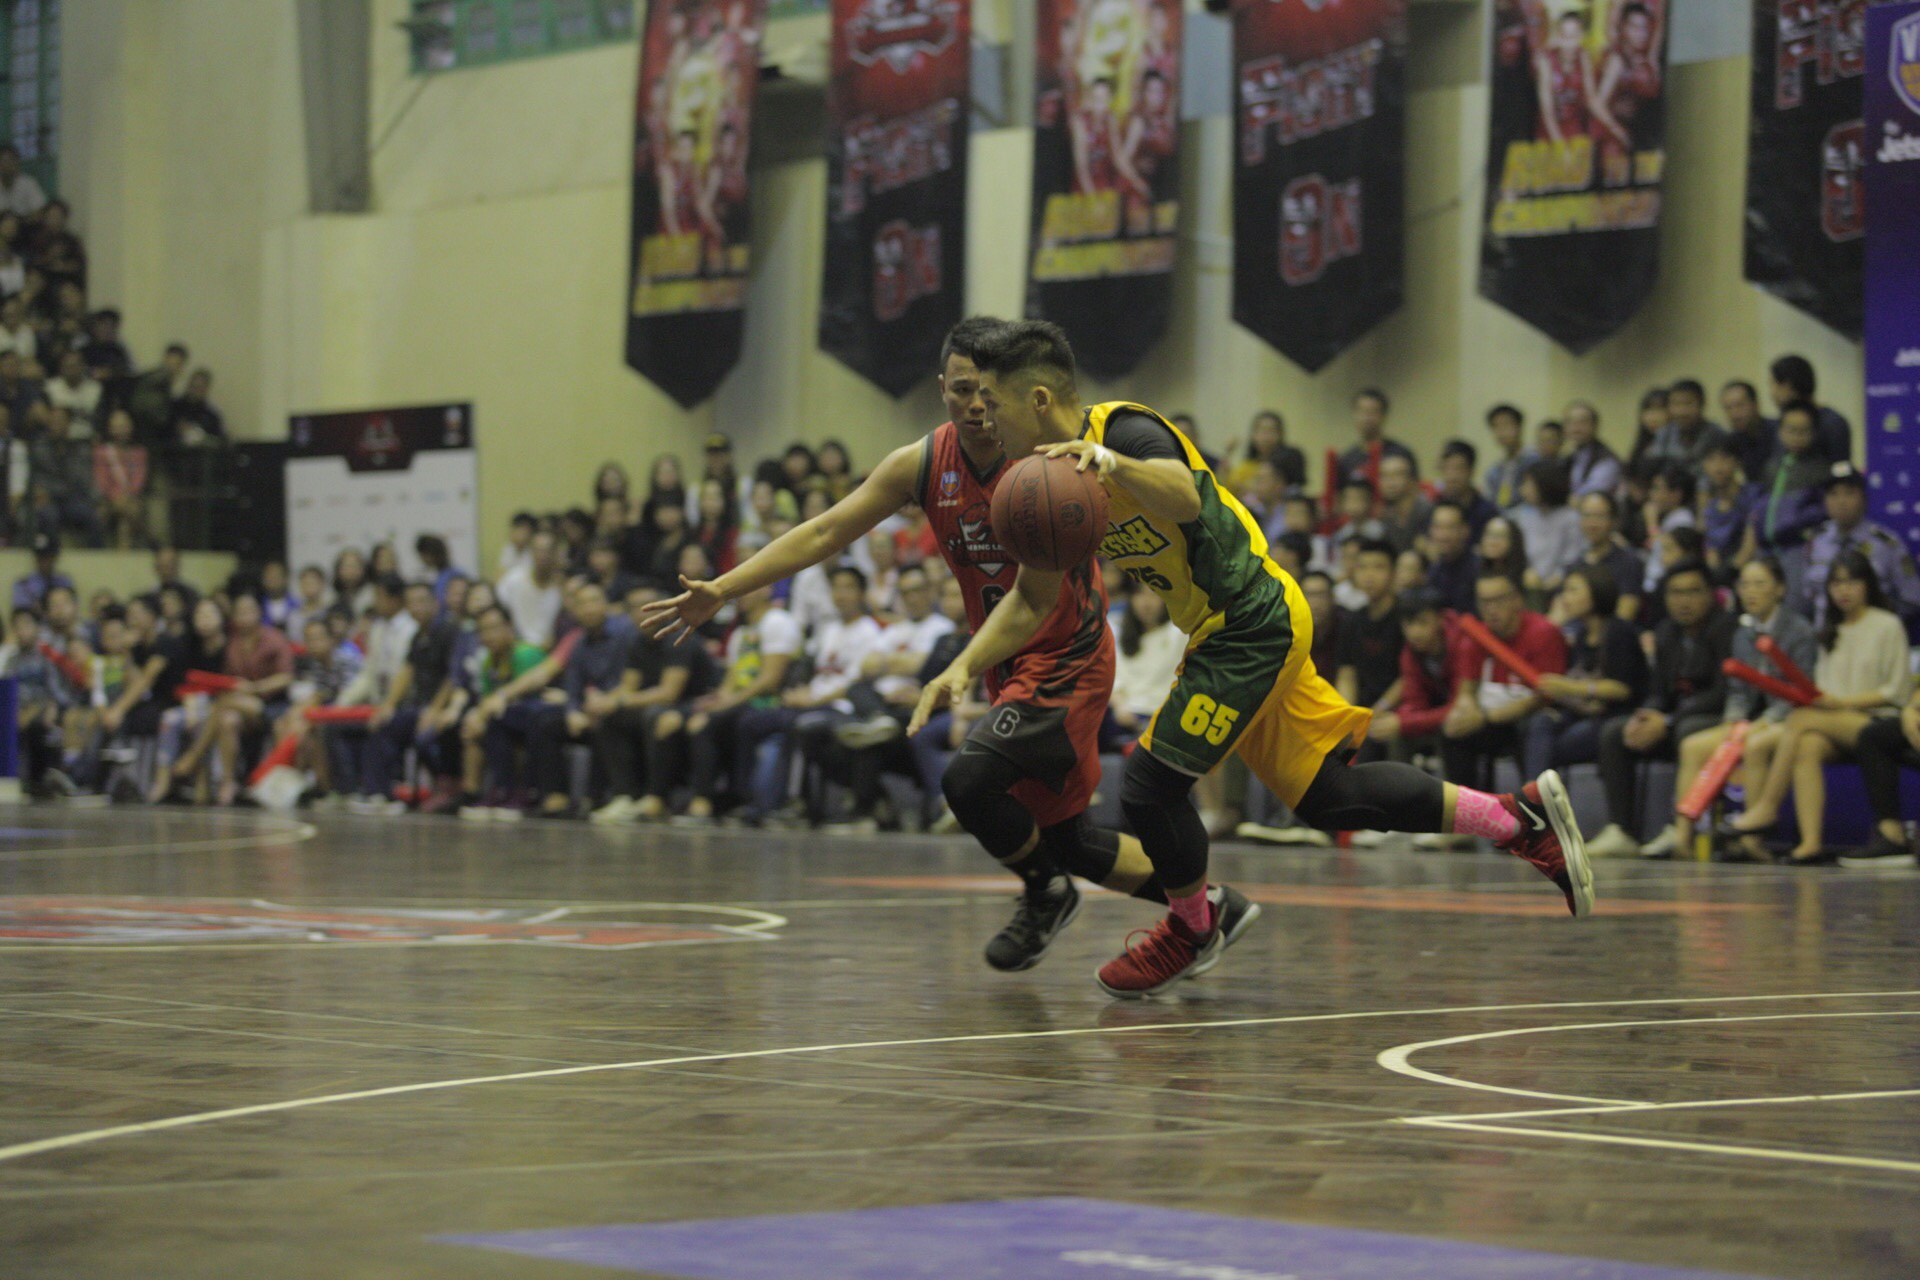 Thanglong Warriors vs Cantho Catfish anh 20